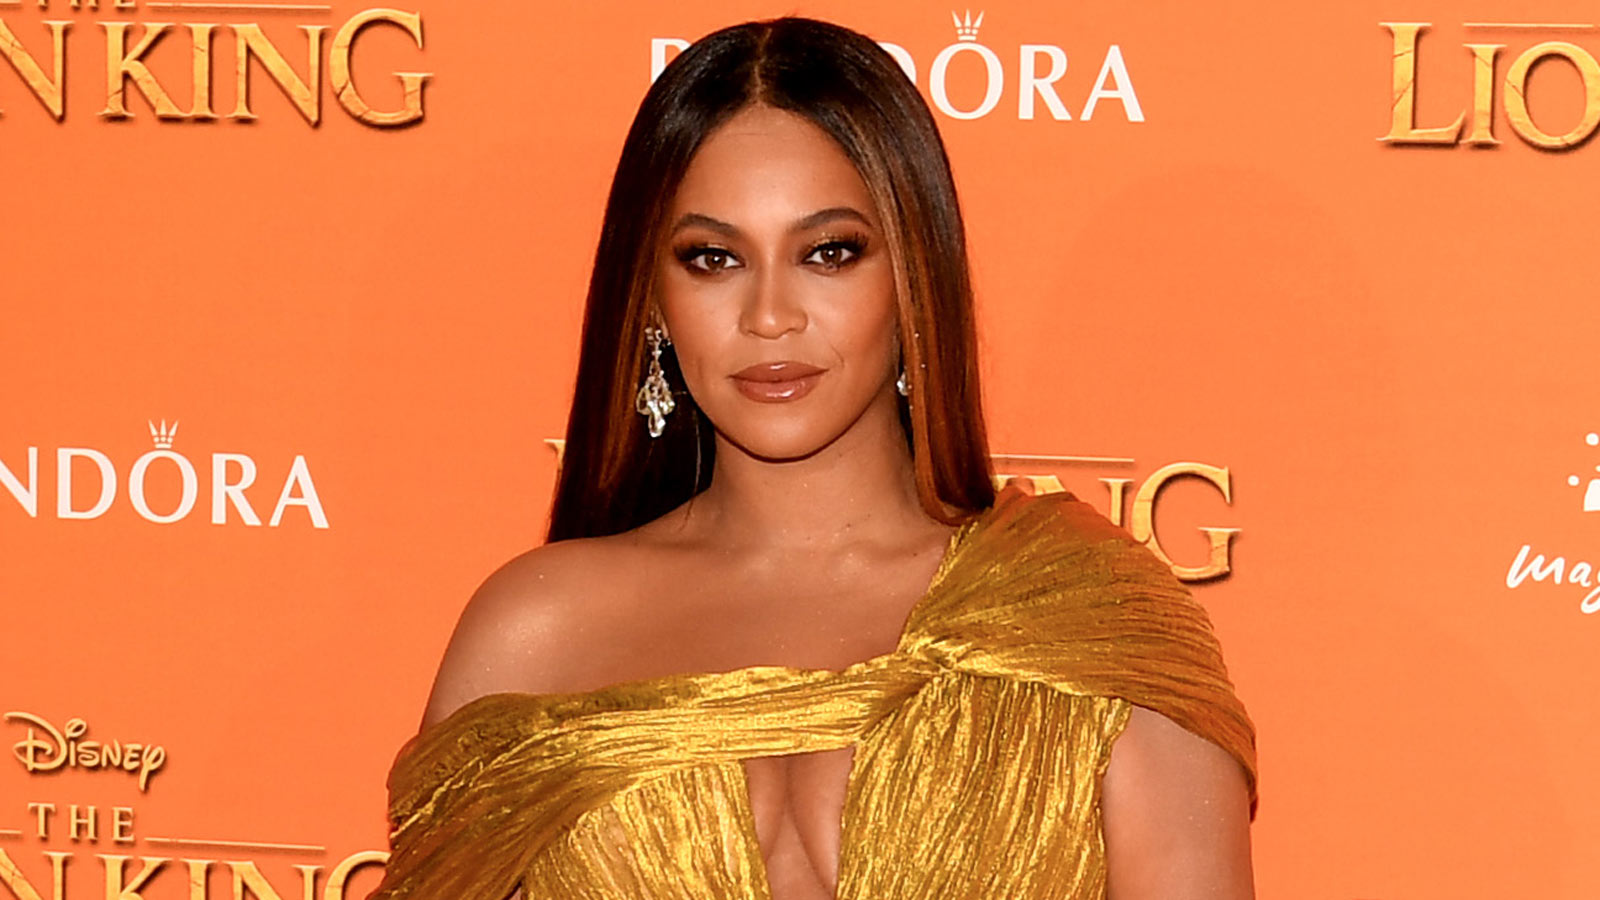 Beyoncé urges fans to remain 'focused' in fight for justice for George Floyd